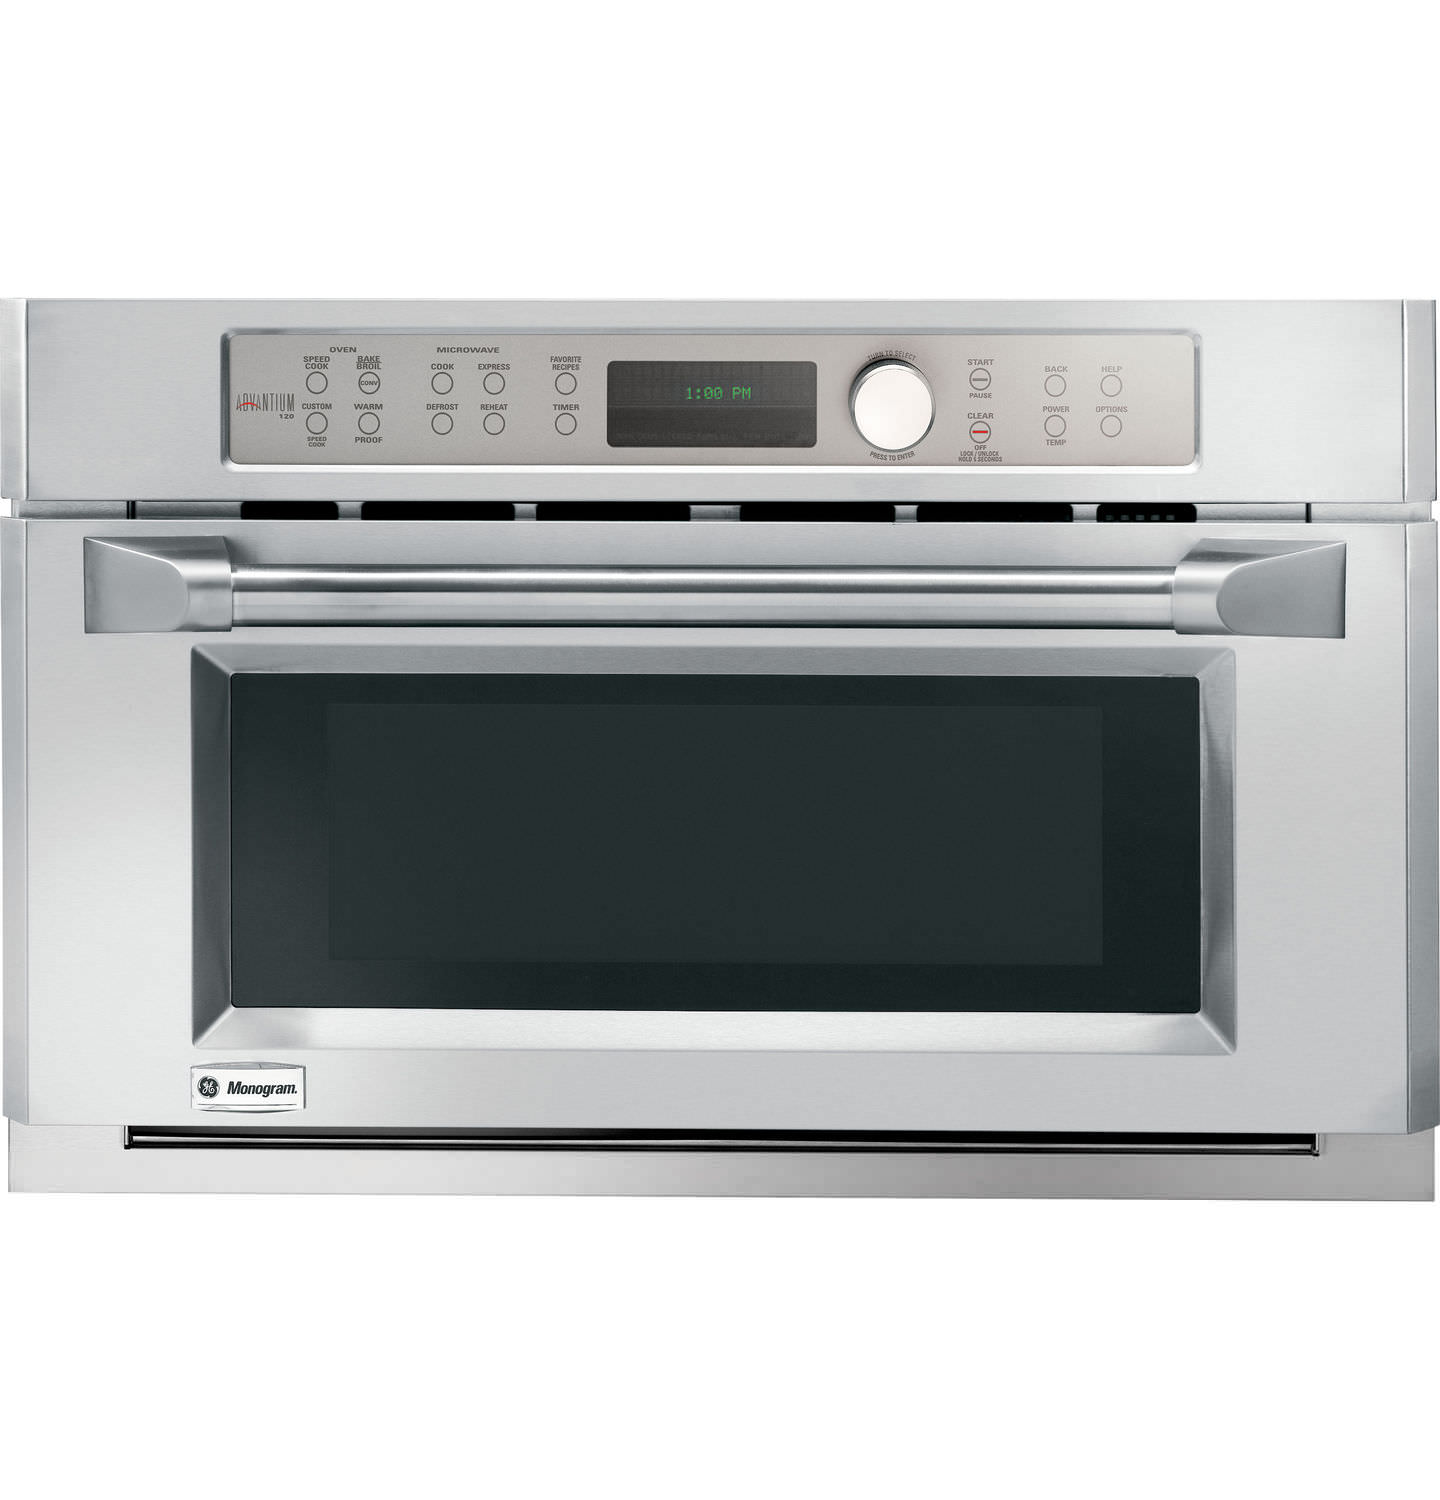 electric oven microwave builtin zsc1202nss